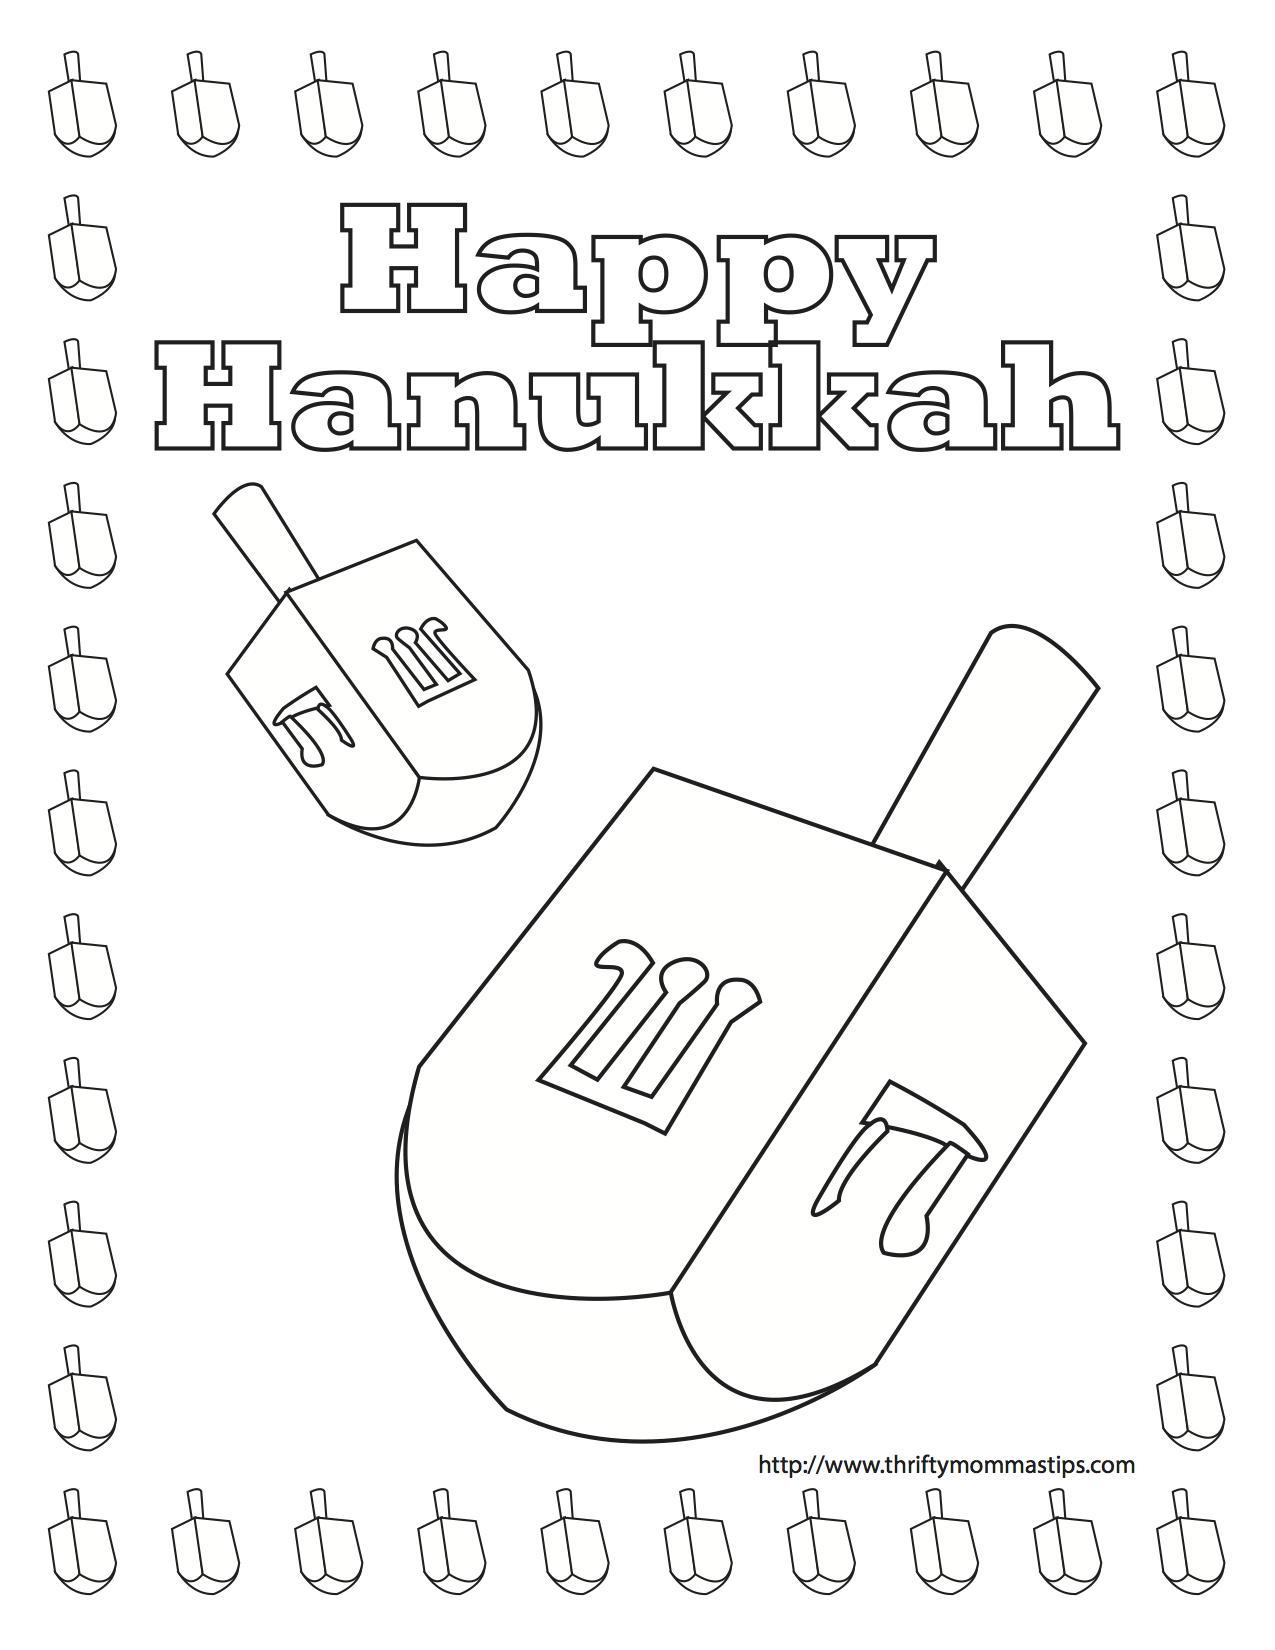 Free Printable Dreidel coloring pages